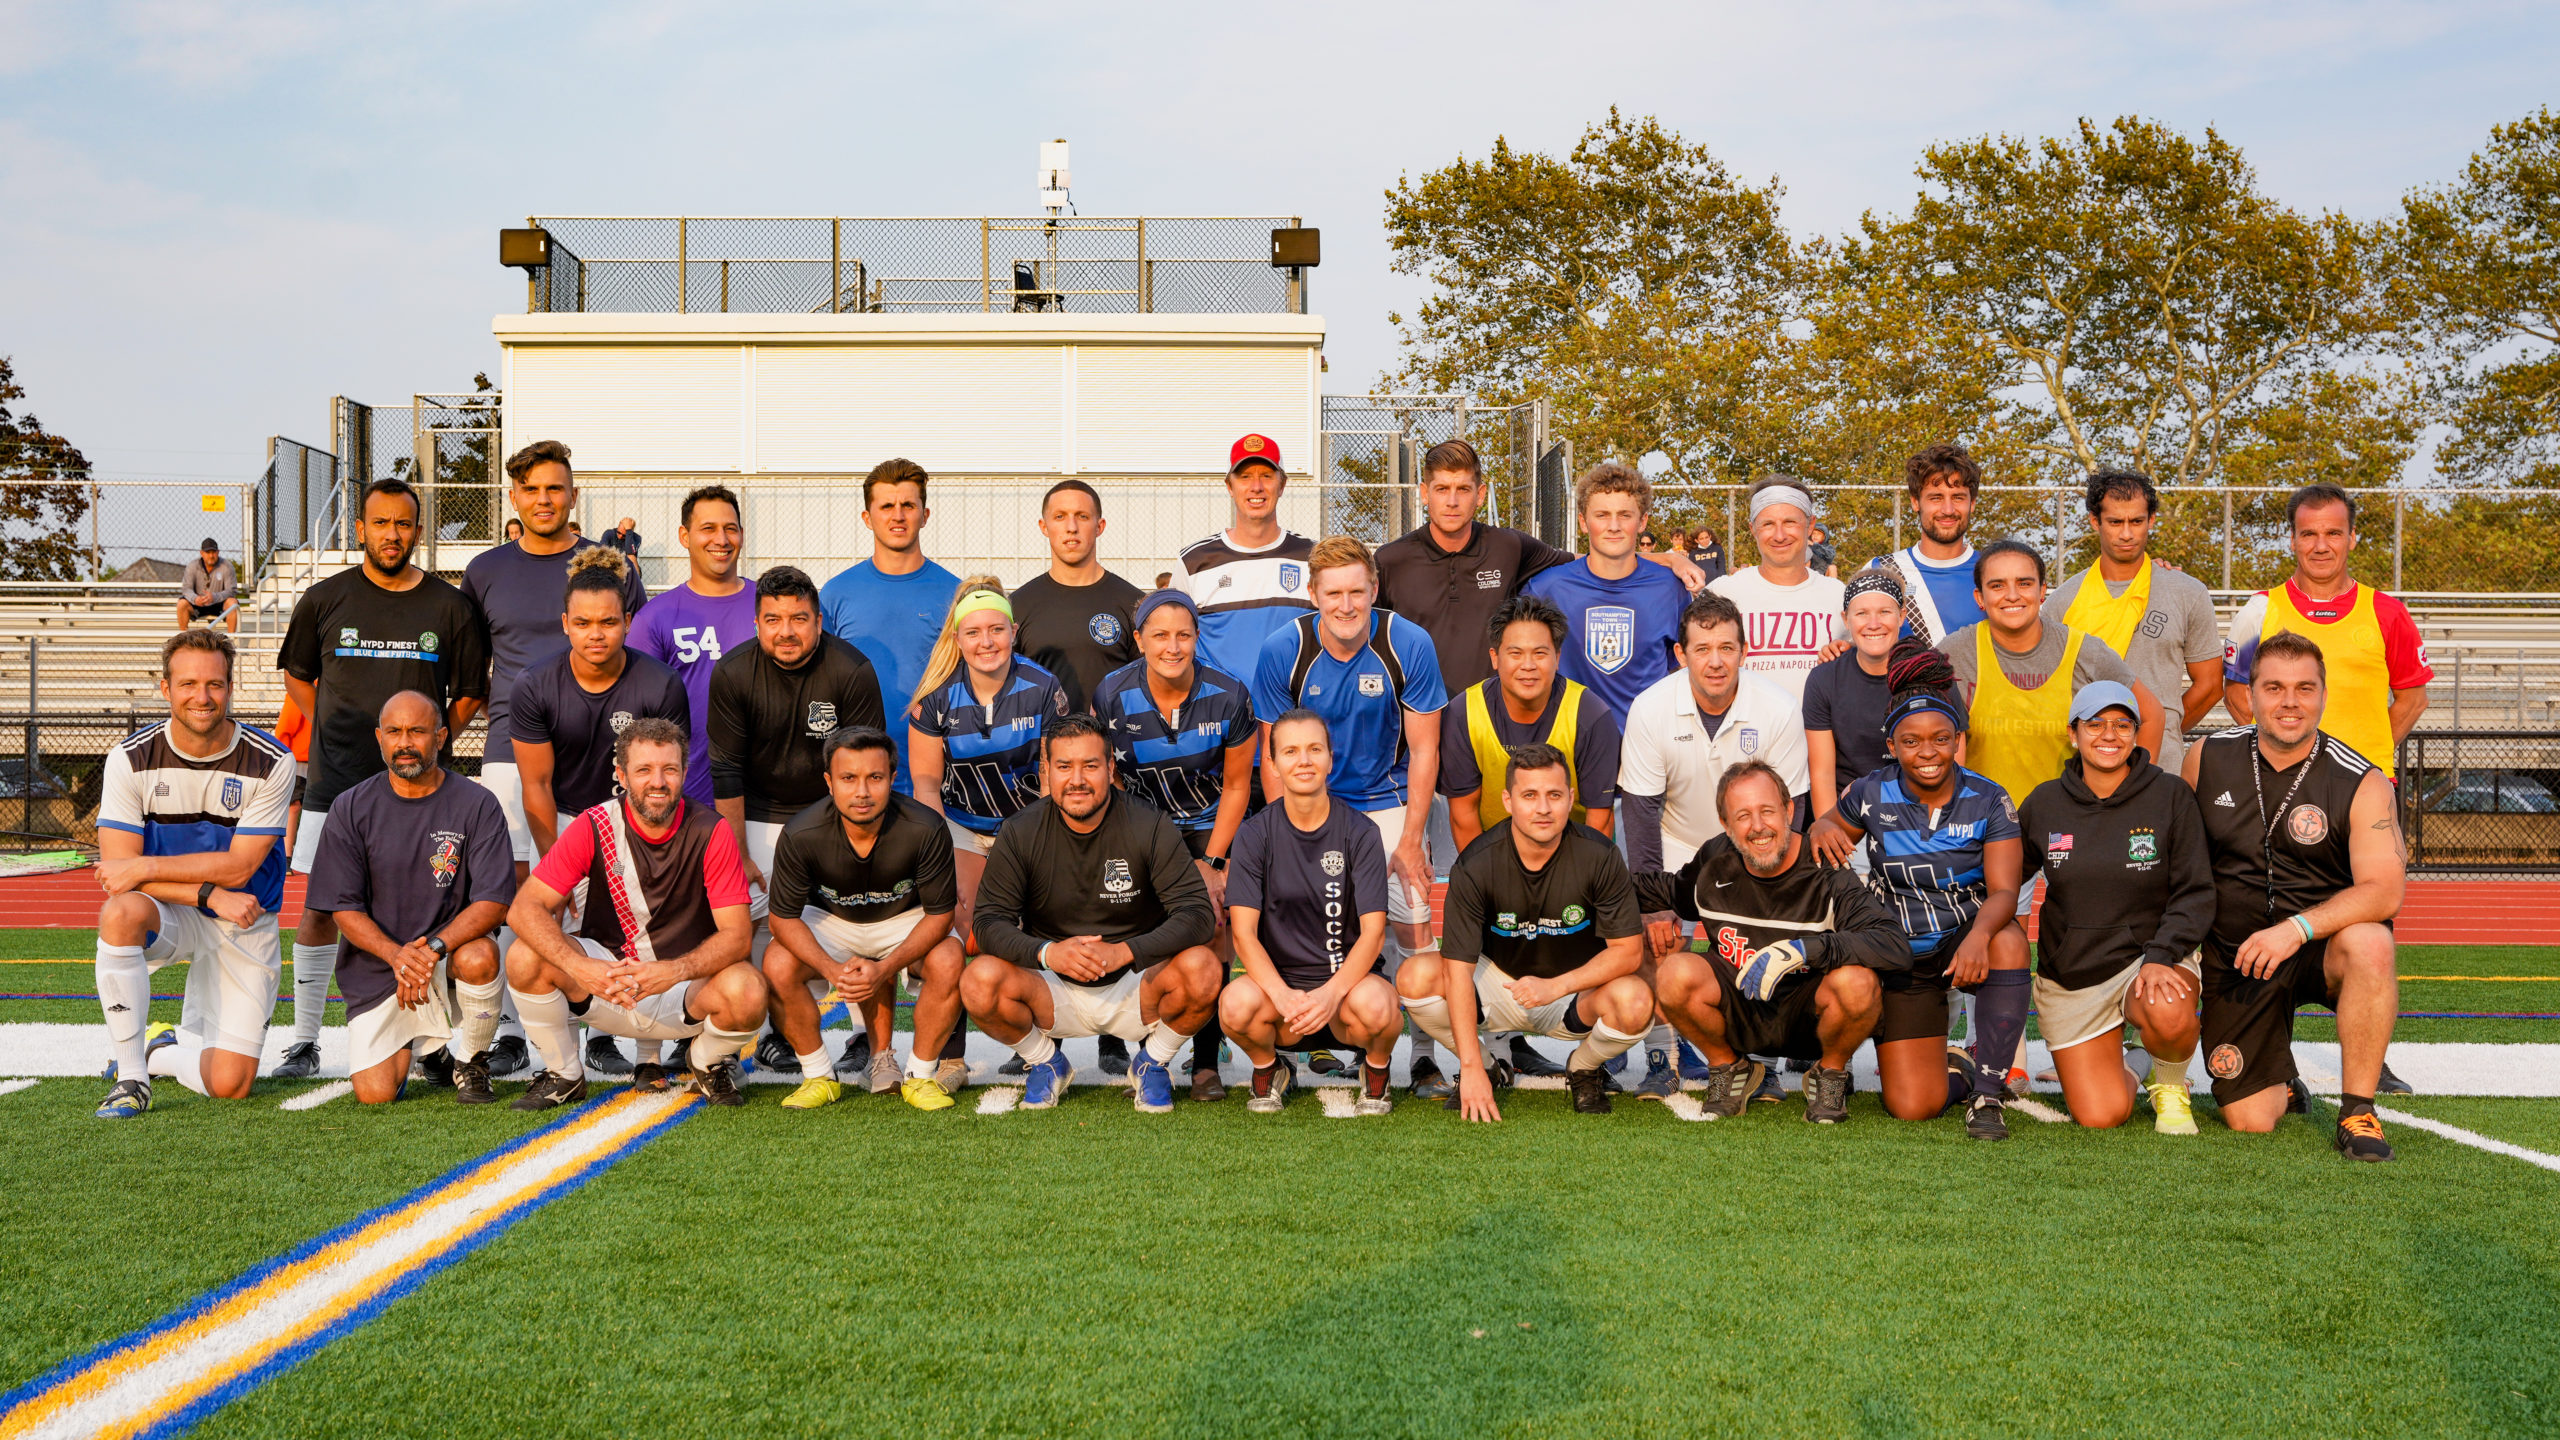 Colonial Sports Group, a local travel soccer program based in Southampton, and the NYPD soccer team played a charity soccer game on Sunday evening at Southampton High School.